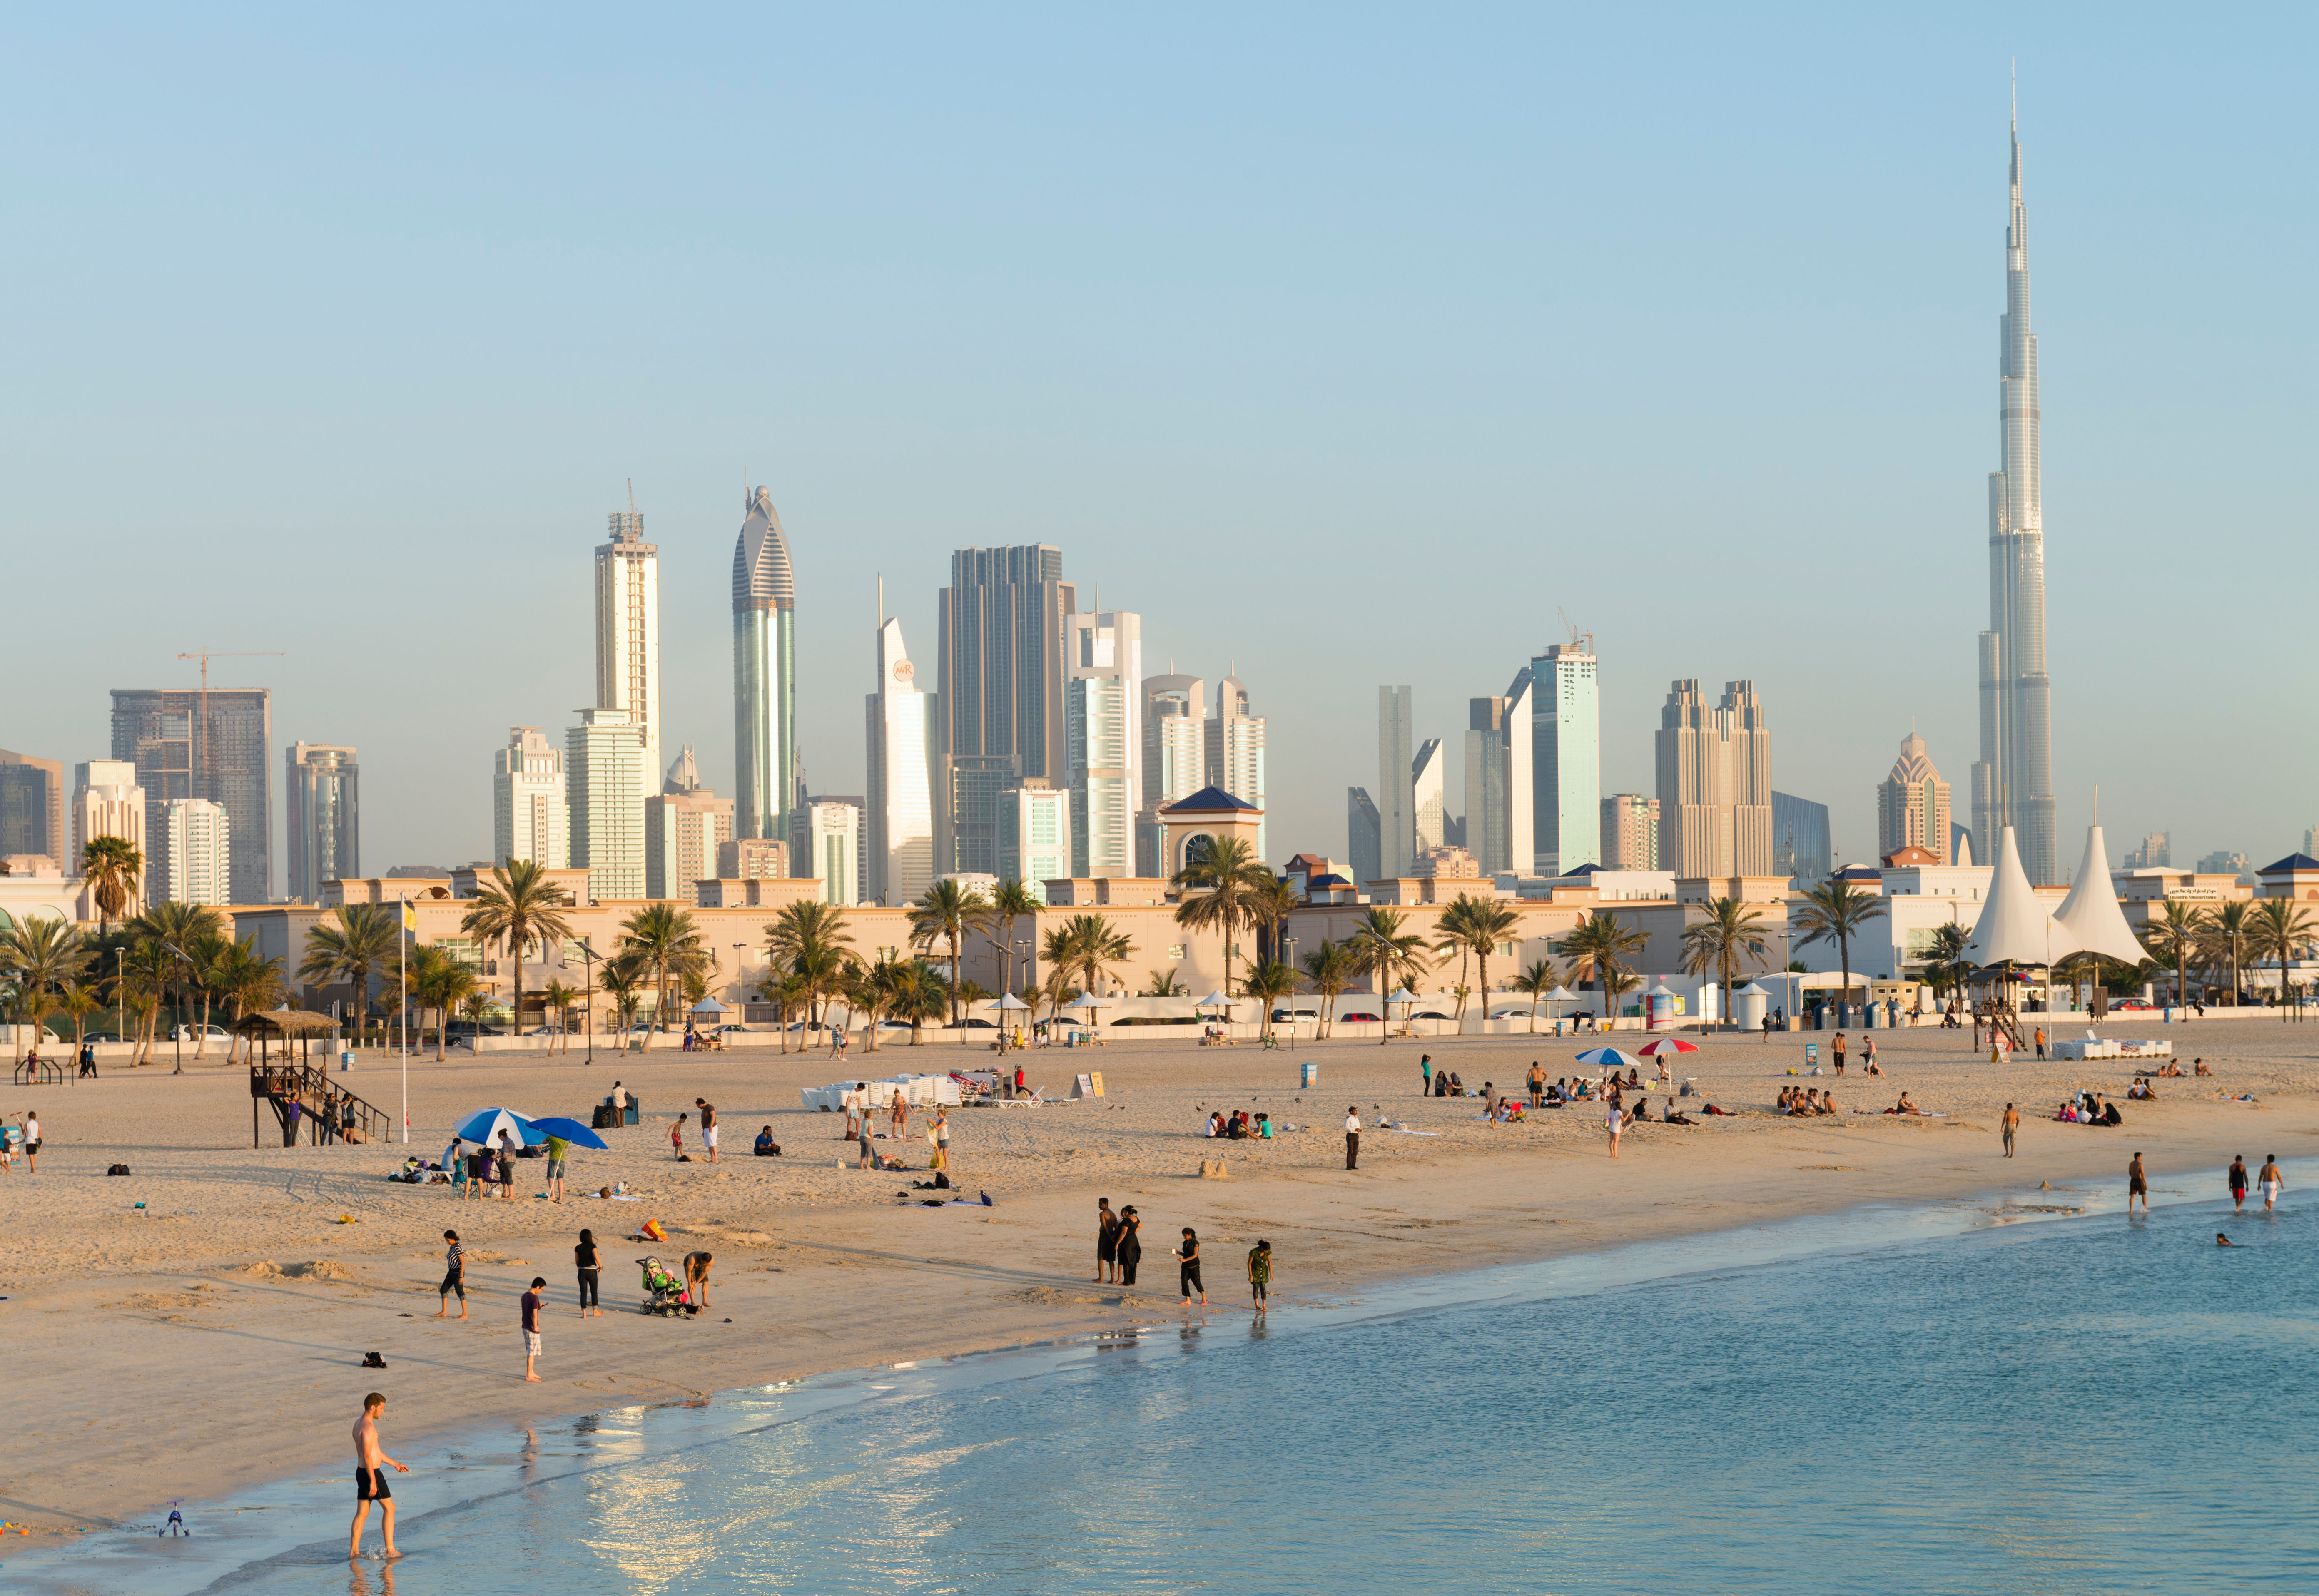 View of modern skyline of Dubai from Jumeirah Open Public Beach in United Arab Emirates UAE